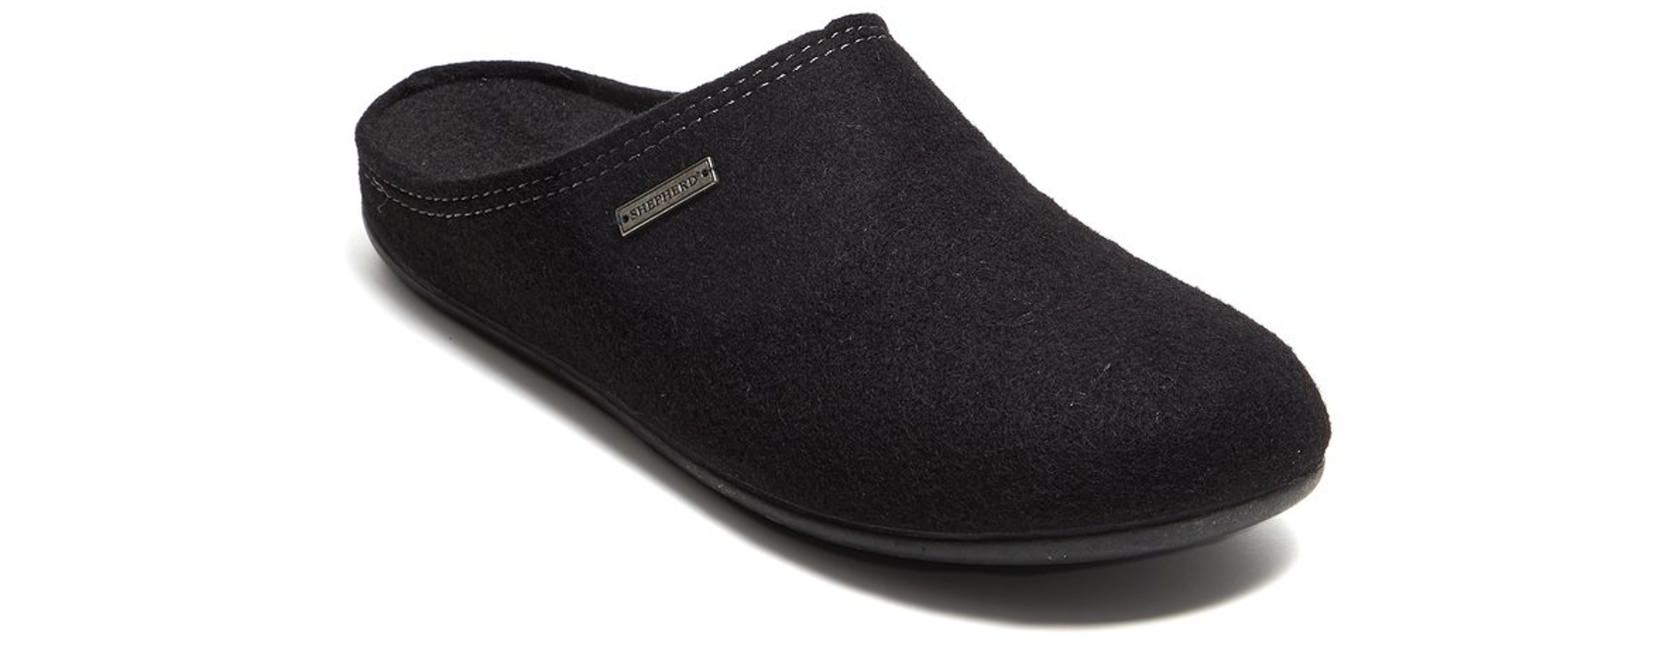 Shepherd of Sweden Slippers